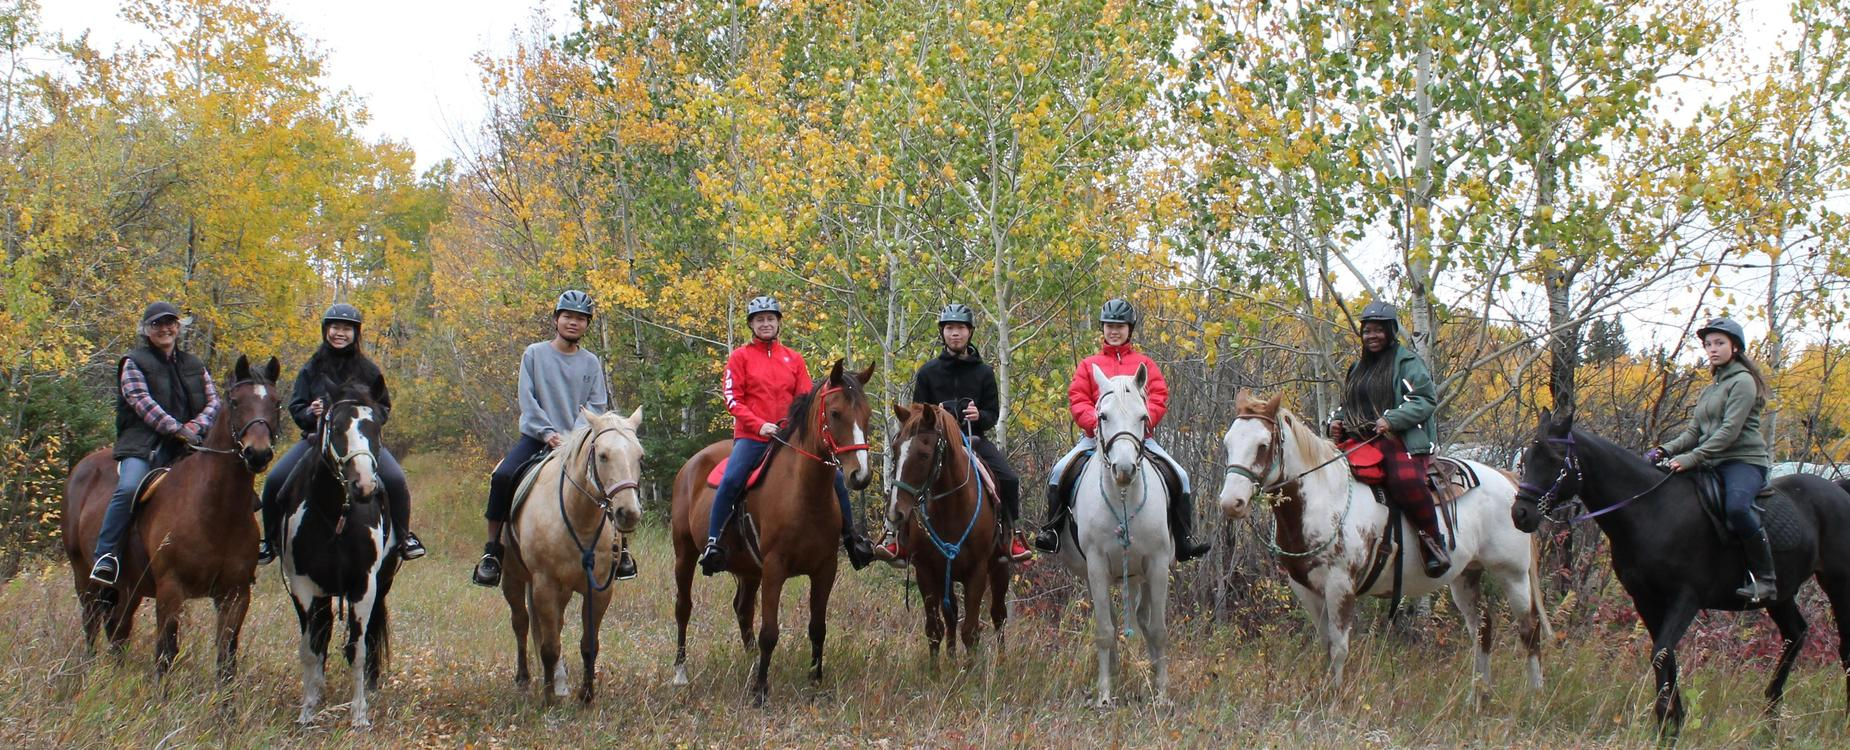 students on a trail ride with horses